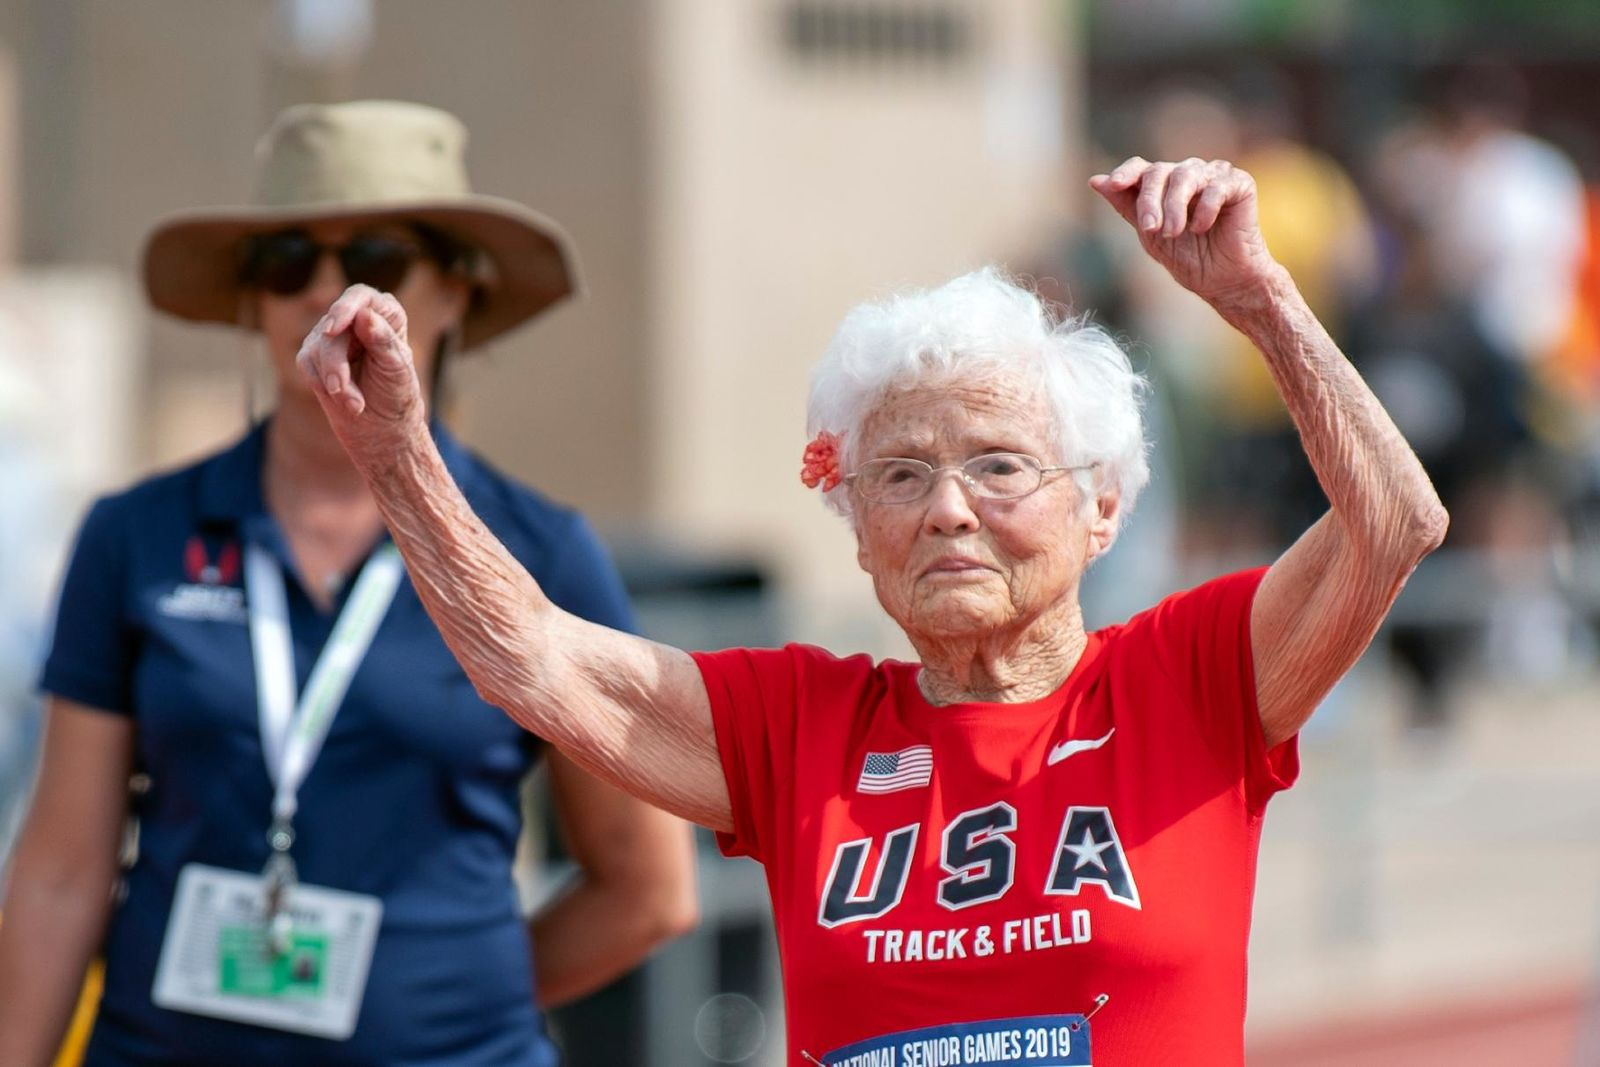 In this photo provided by the National Senior Games Association, 103-year-old Julia Hawkins, of Baton Rouge, La., celebrates after completing the 50-meter dash at the 2019 National Senior Games in Albuquerque, N.M., Monday, June 17, 2019.  (Brit Huckabay/NSGA via AP)